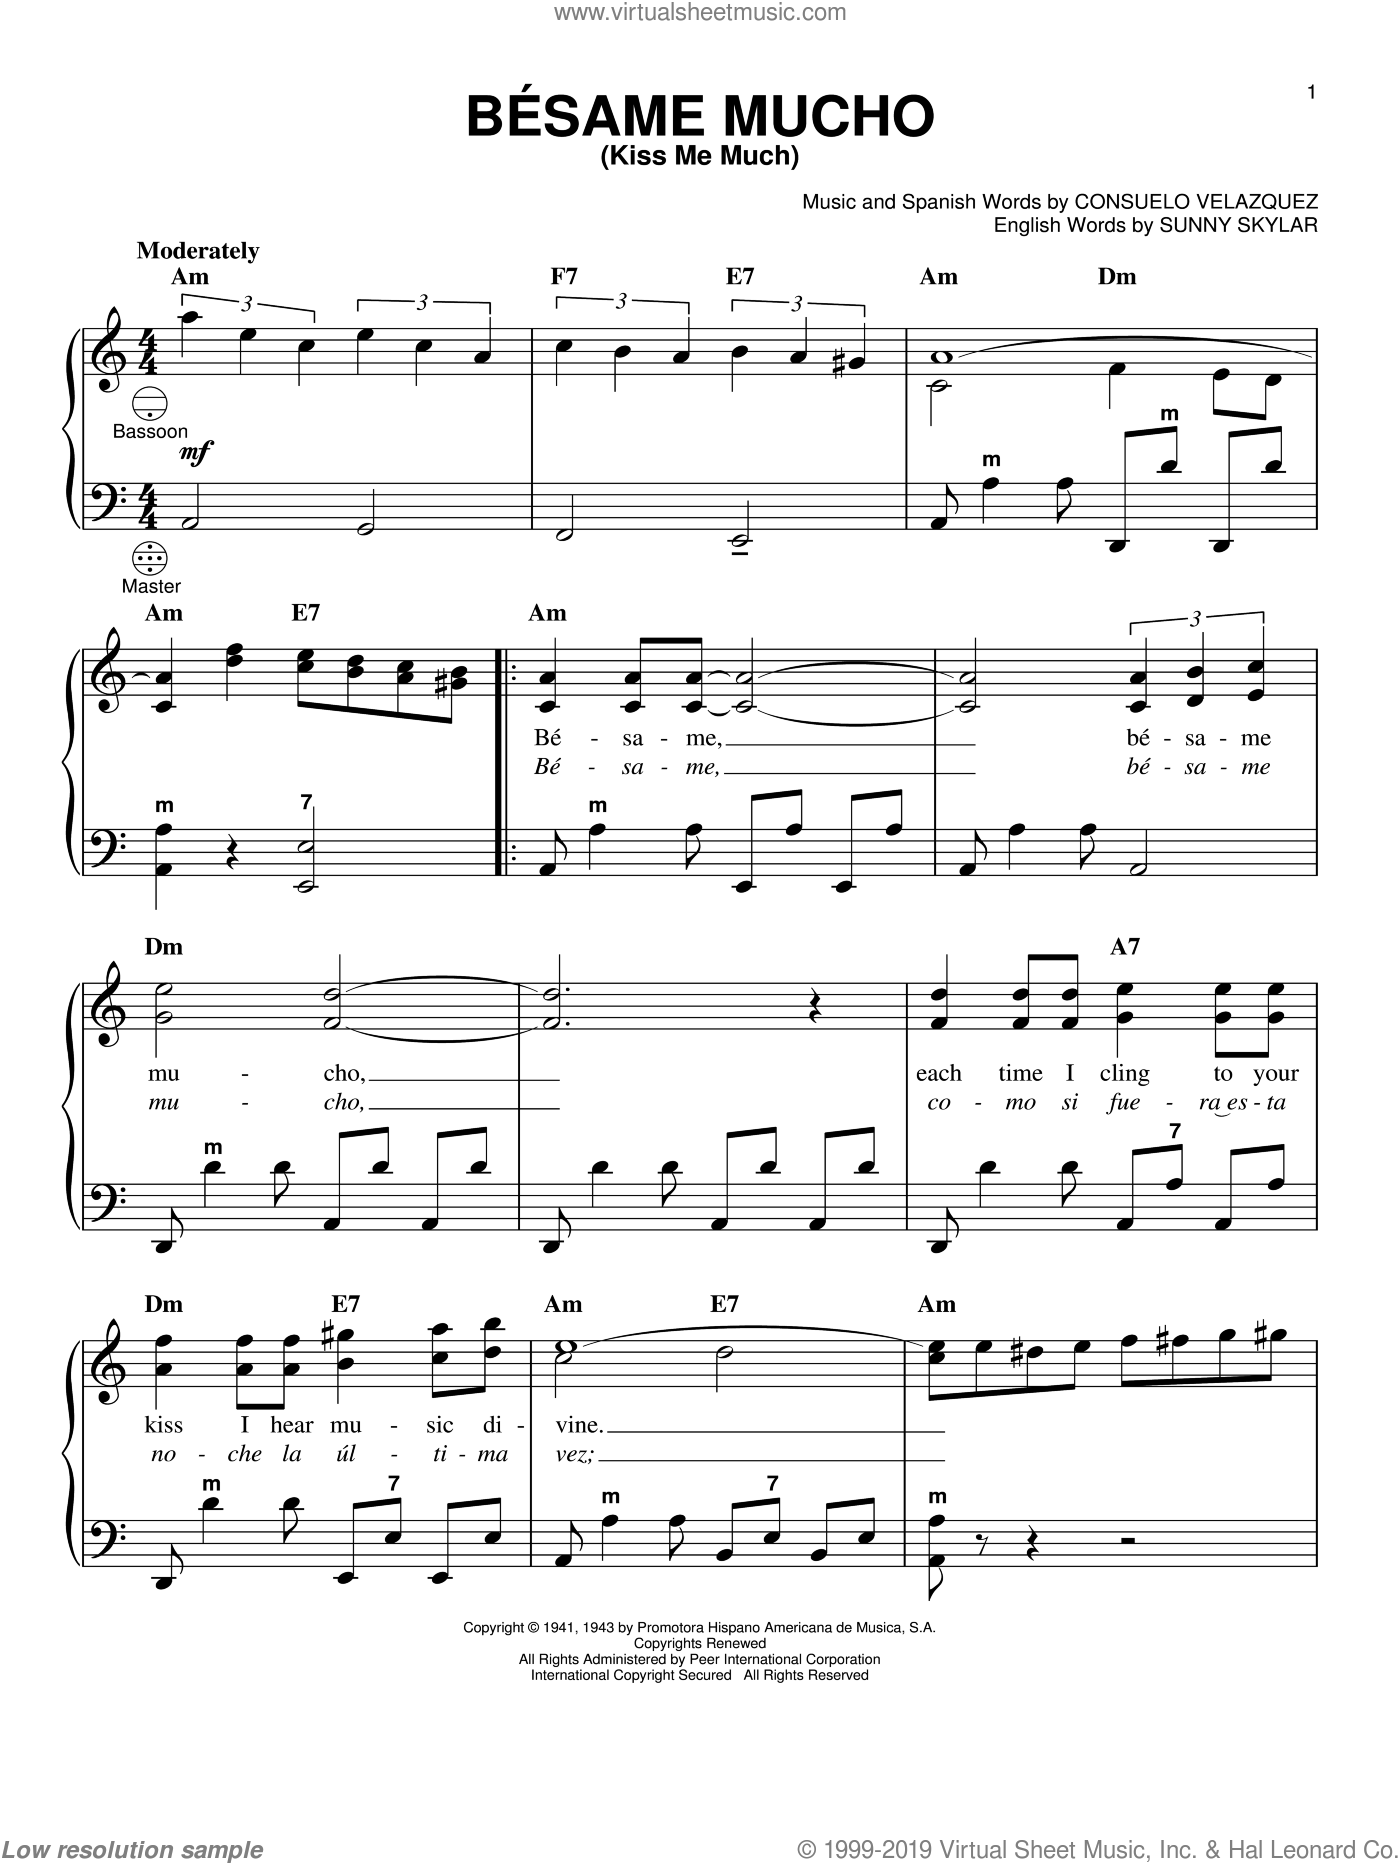 Besame Mucho (Kiss Me Much) sheet music for accordion by Consuelo Velazquez, Gary Meisner and Sunny Skylar, intermediate skill level